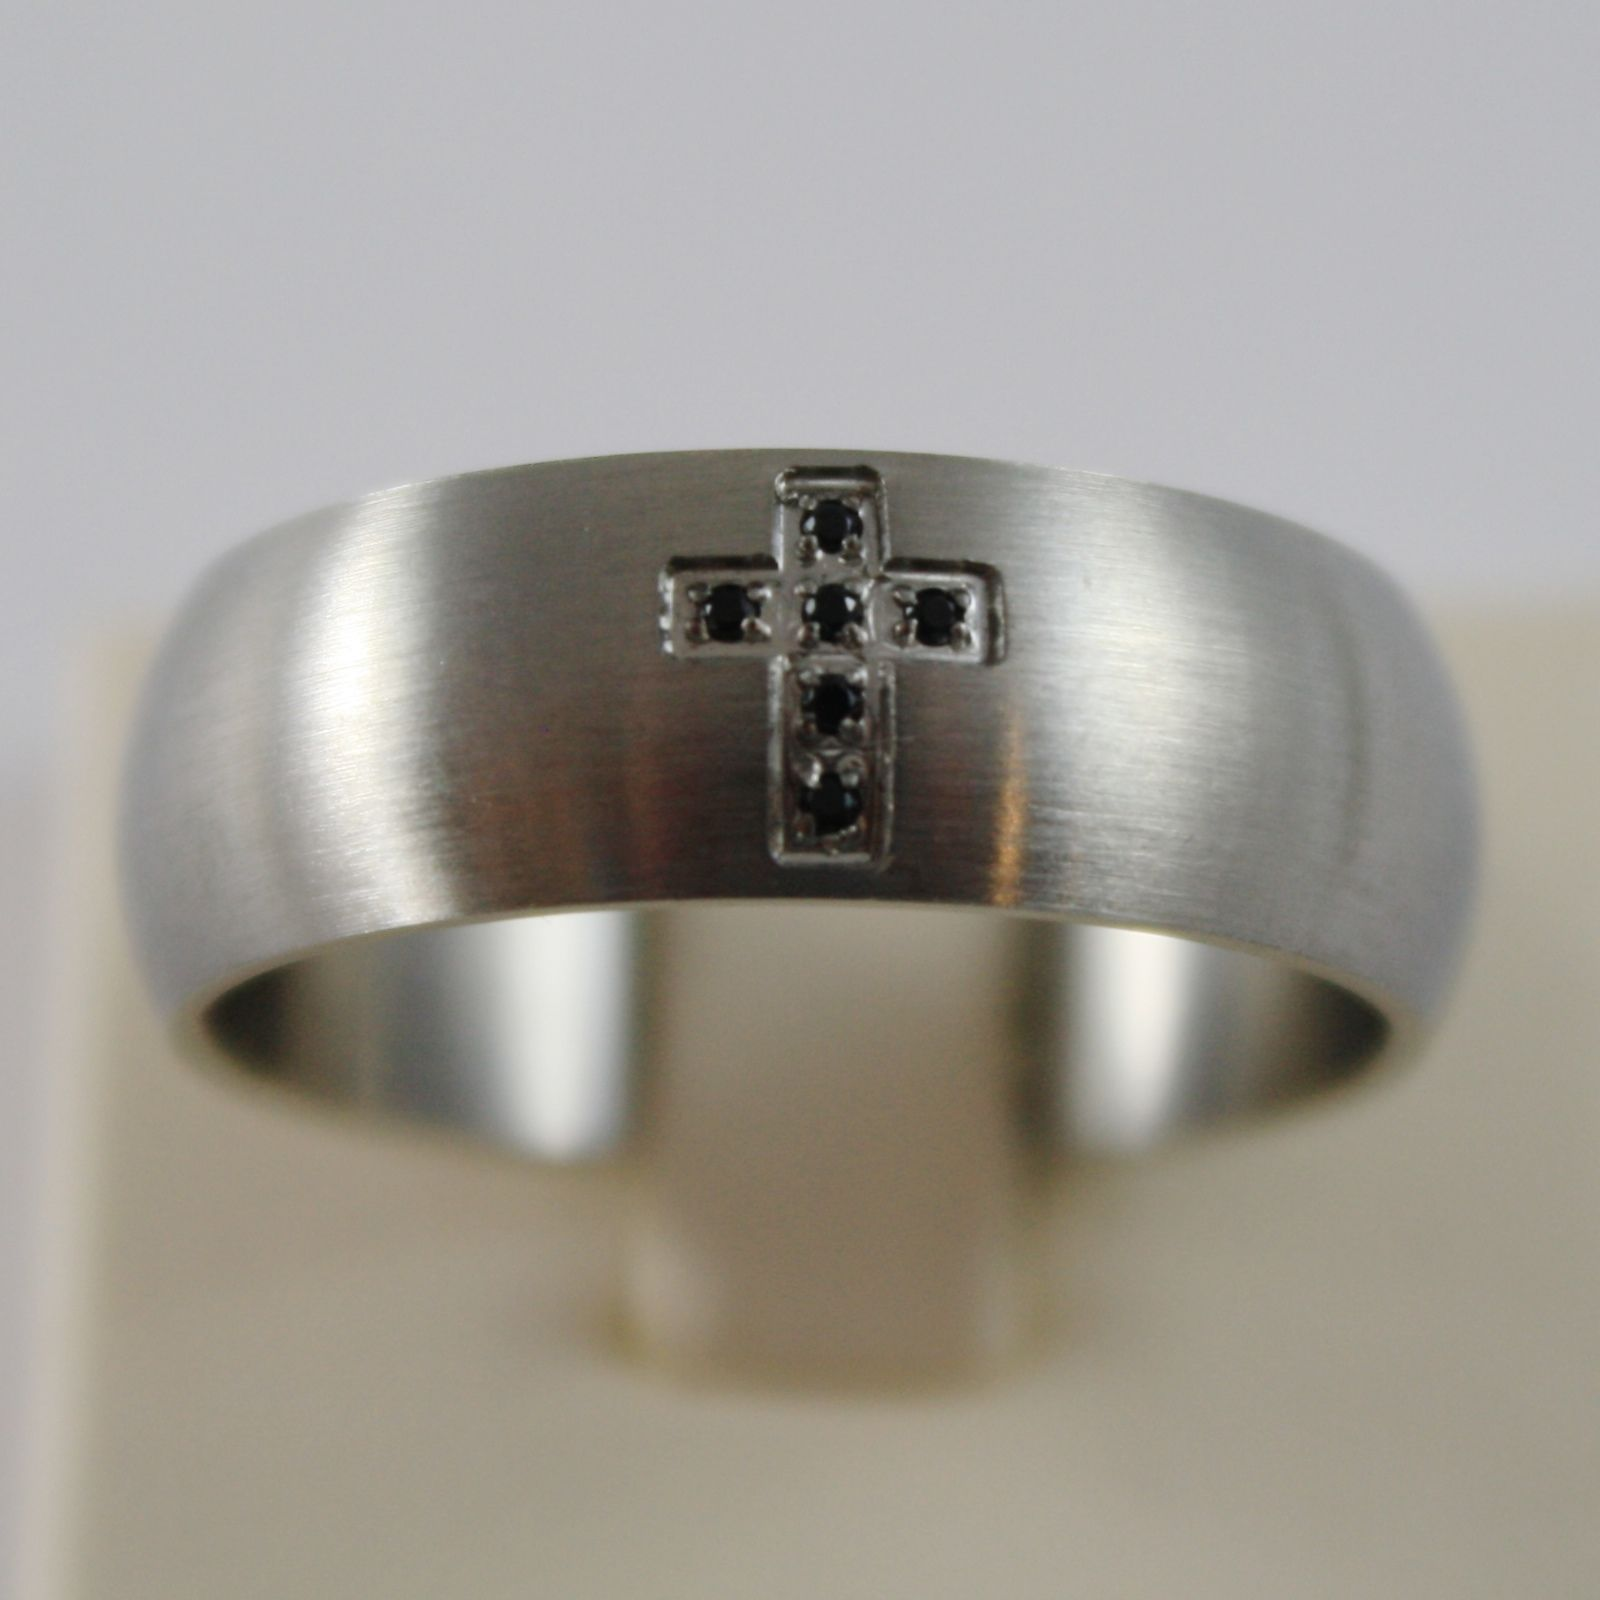 STAINLESS STEEL SATIN WITH BLACK ZIRCONIA CROSS RING 8 MM 4US BY CESARE PACIOTTI